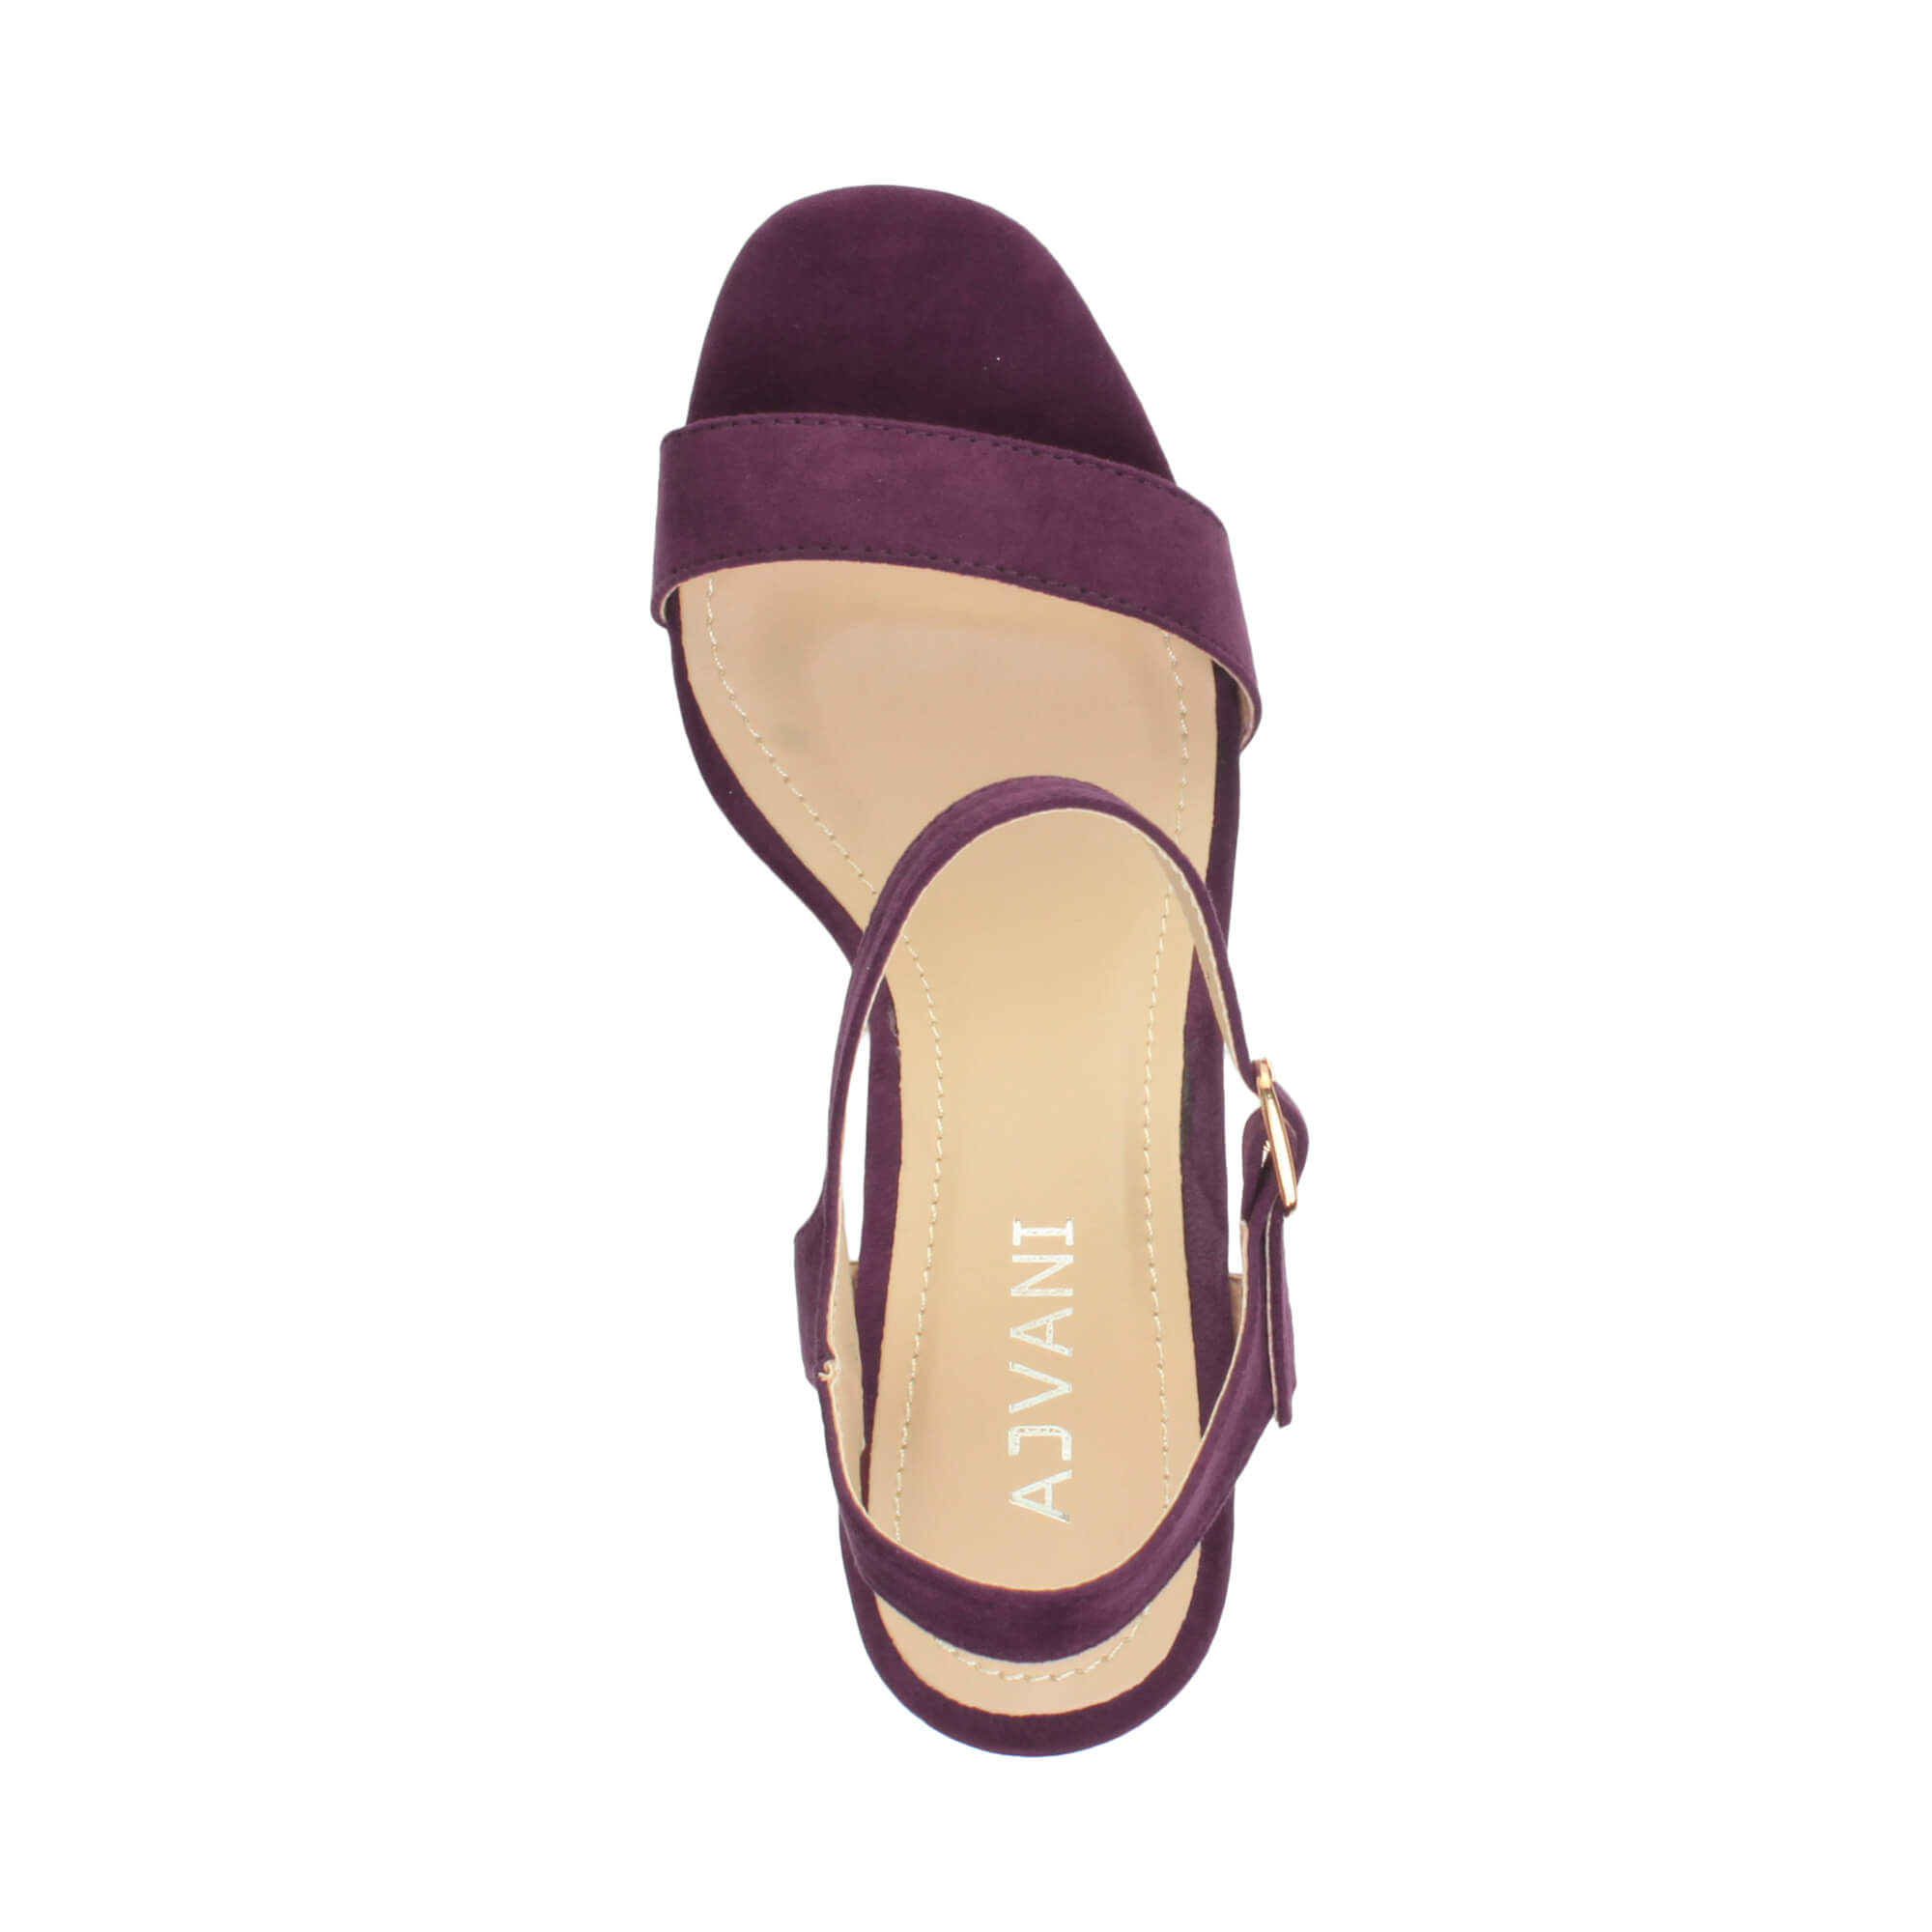 WOMENS-LADIES-HIGH-HEEL-BUCKLE-STRAPPY-BASIC-BARELY-THERE-SANDALS-SHOES-SIZE thumbnail 112